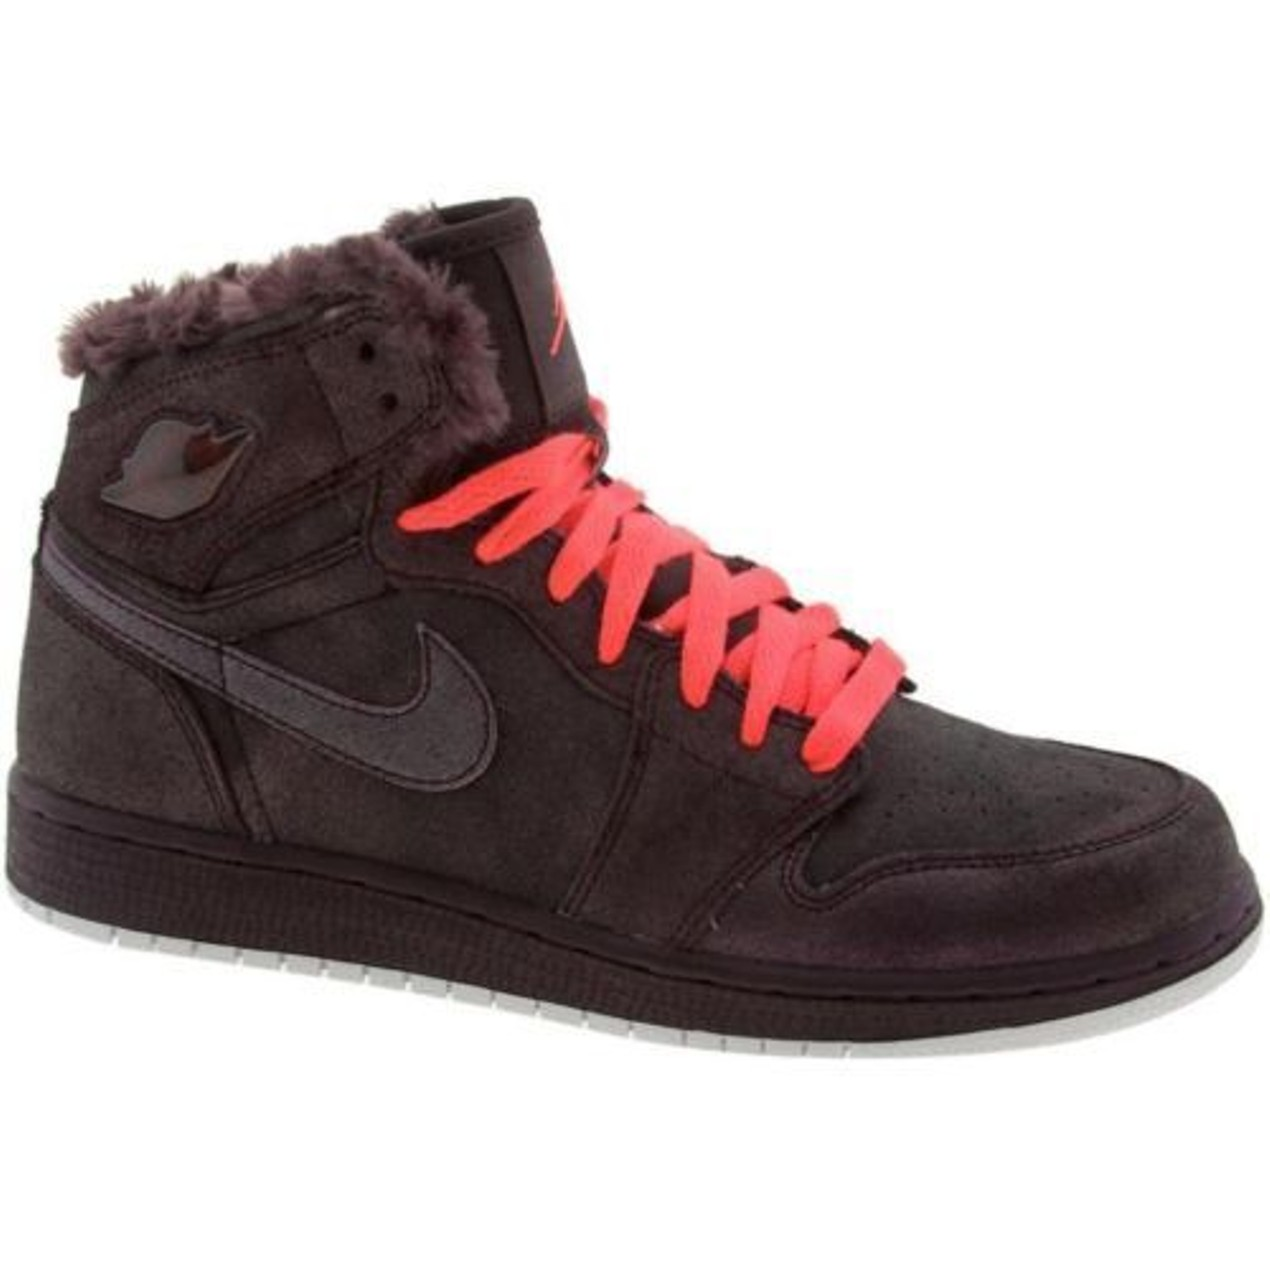 info for a226e 789a8 Girls Nike Air Jordan 1 I Big Kids g Retro High Premium (535804 608) ...